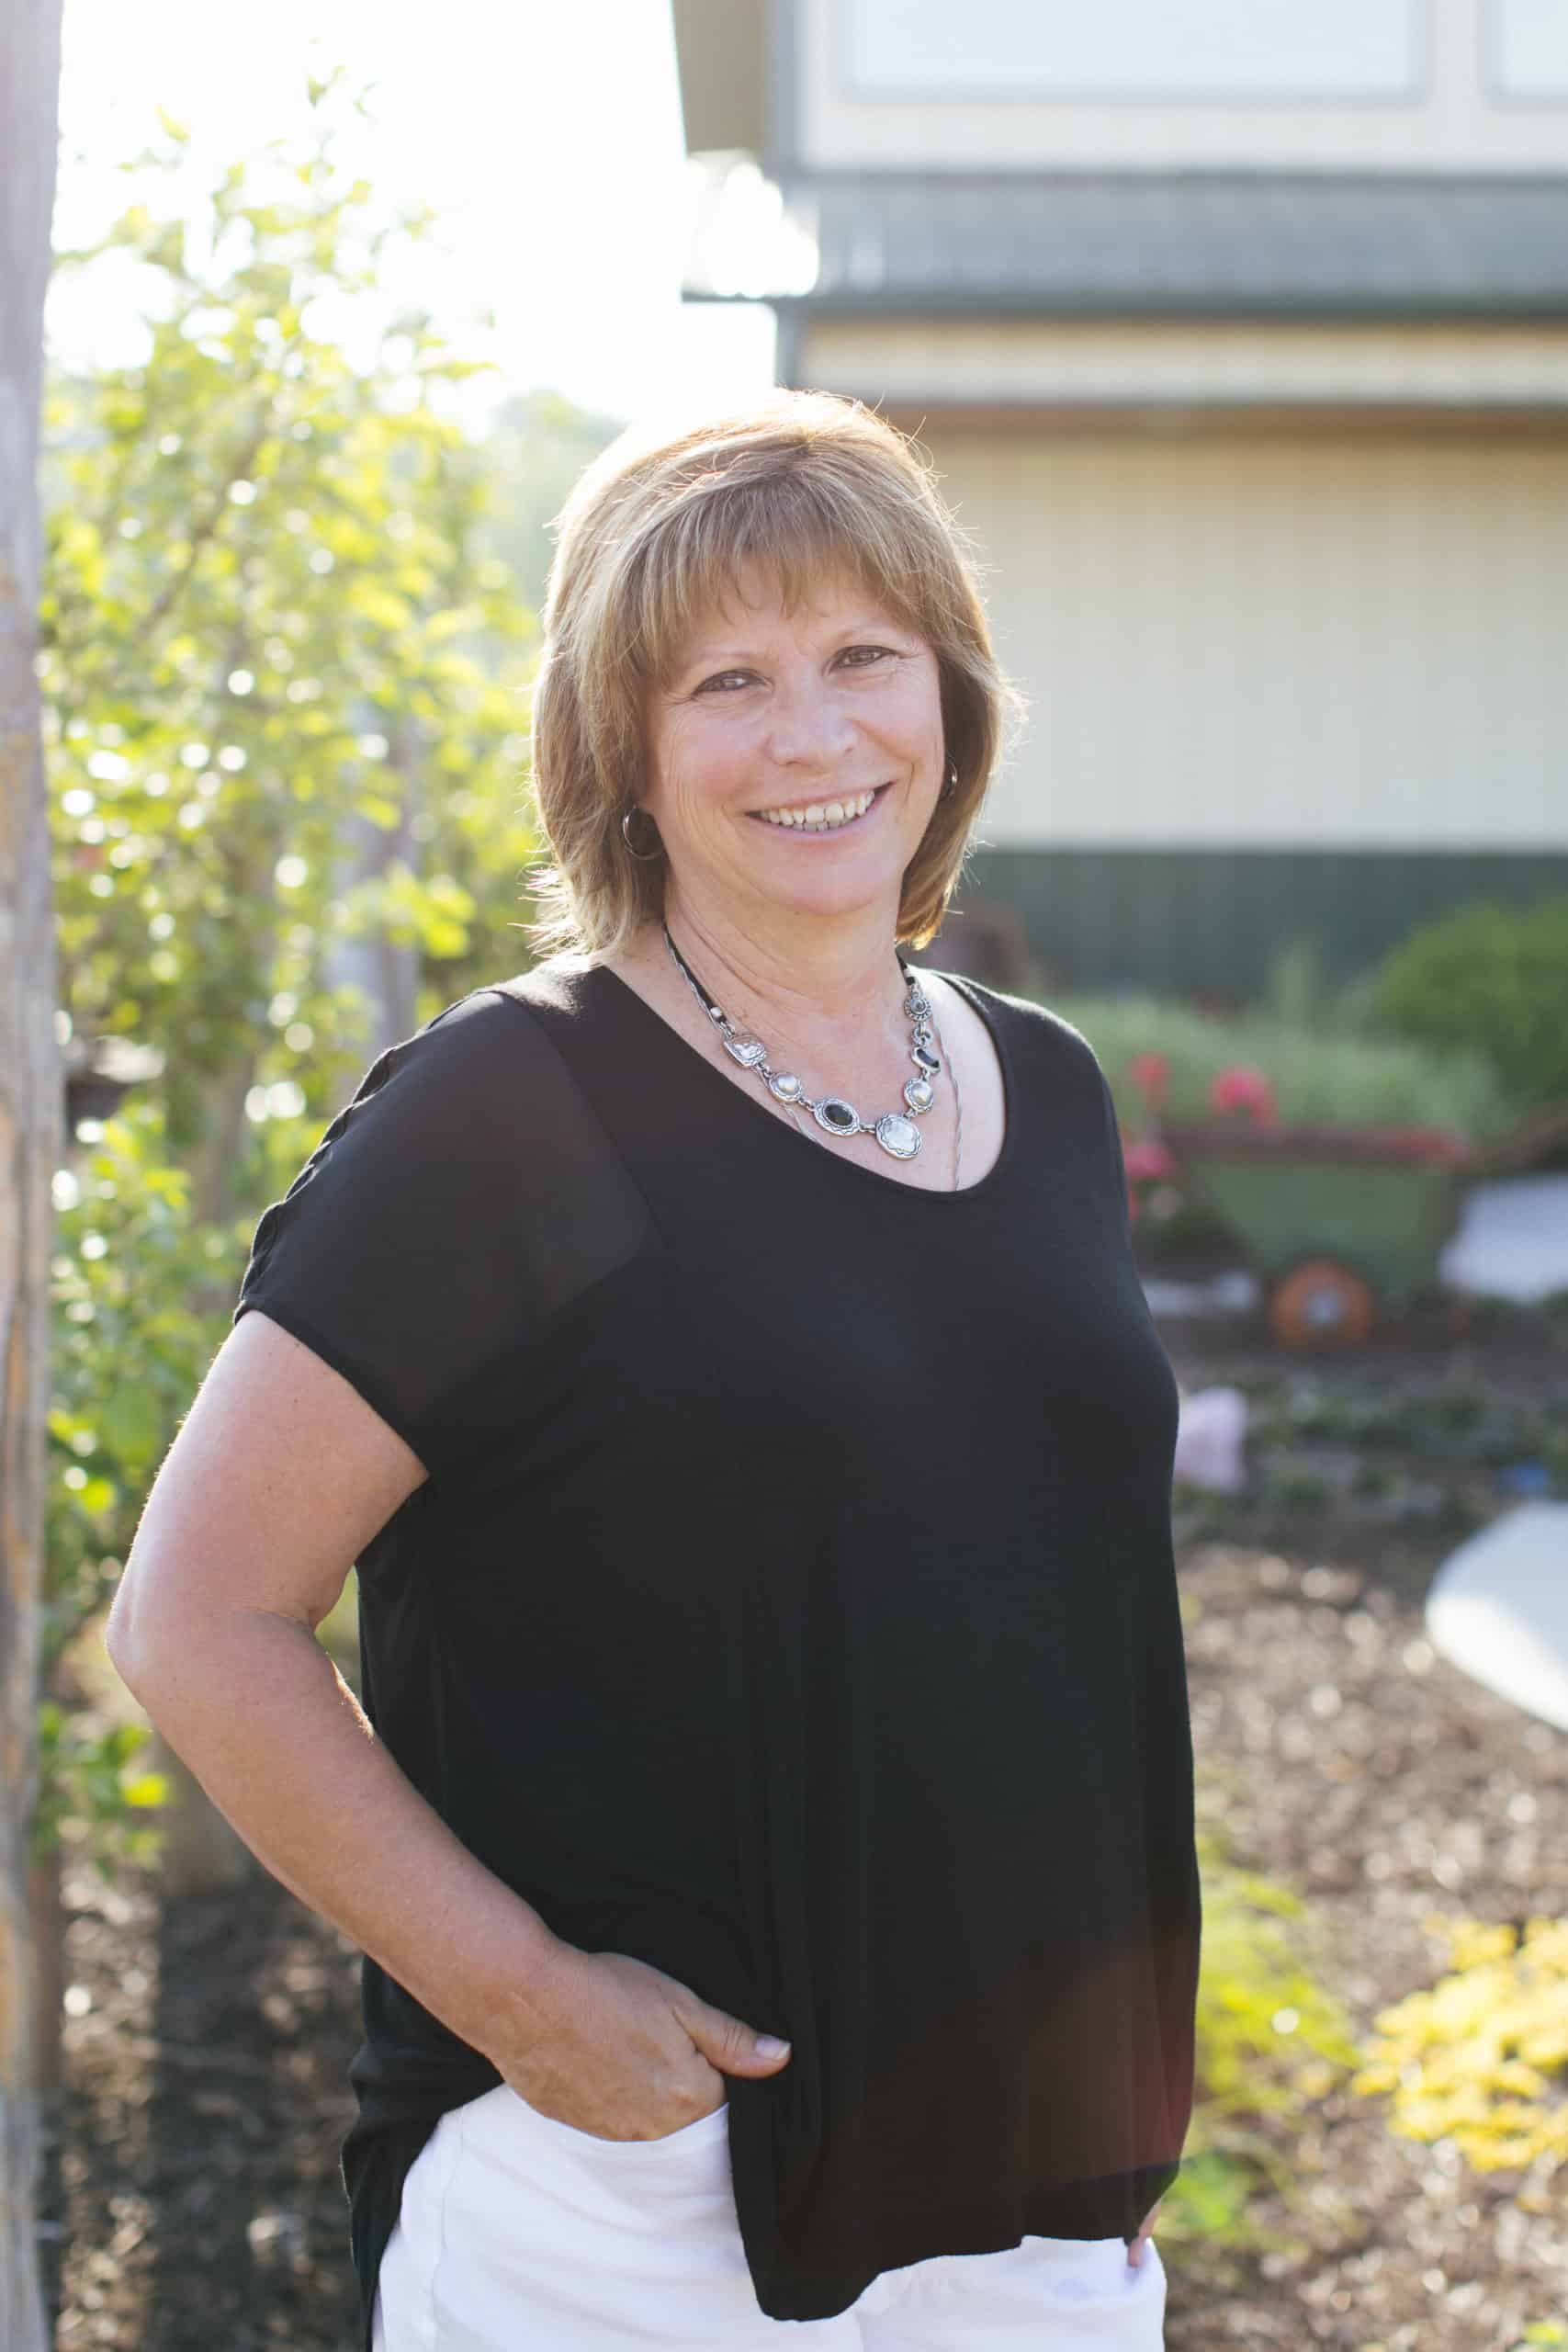 2018 June  08 – Headshots of employees at Sun Valley Landscaping.